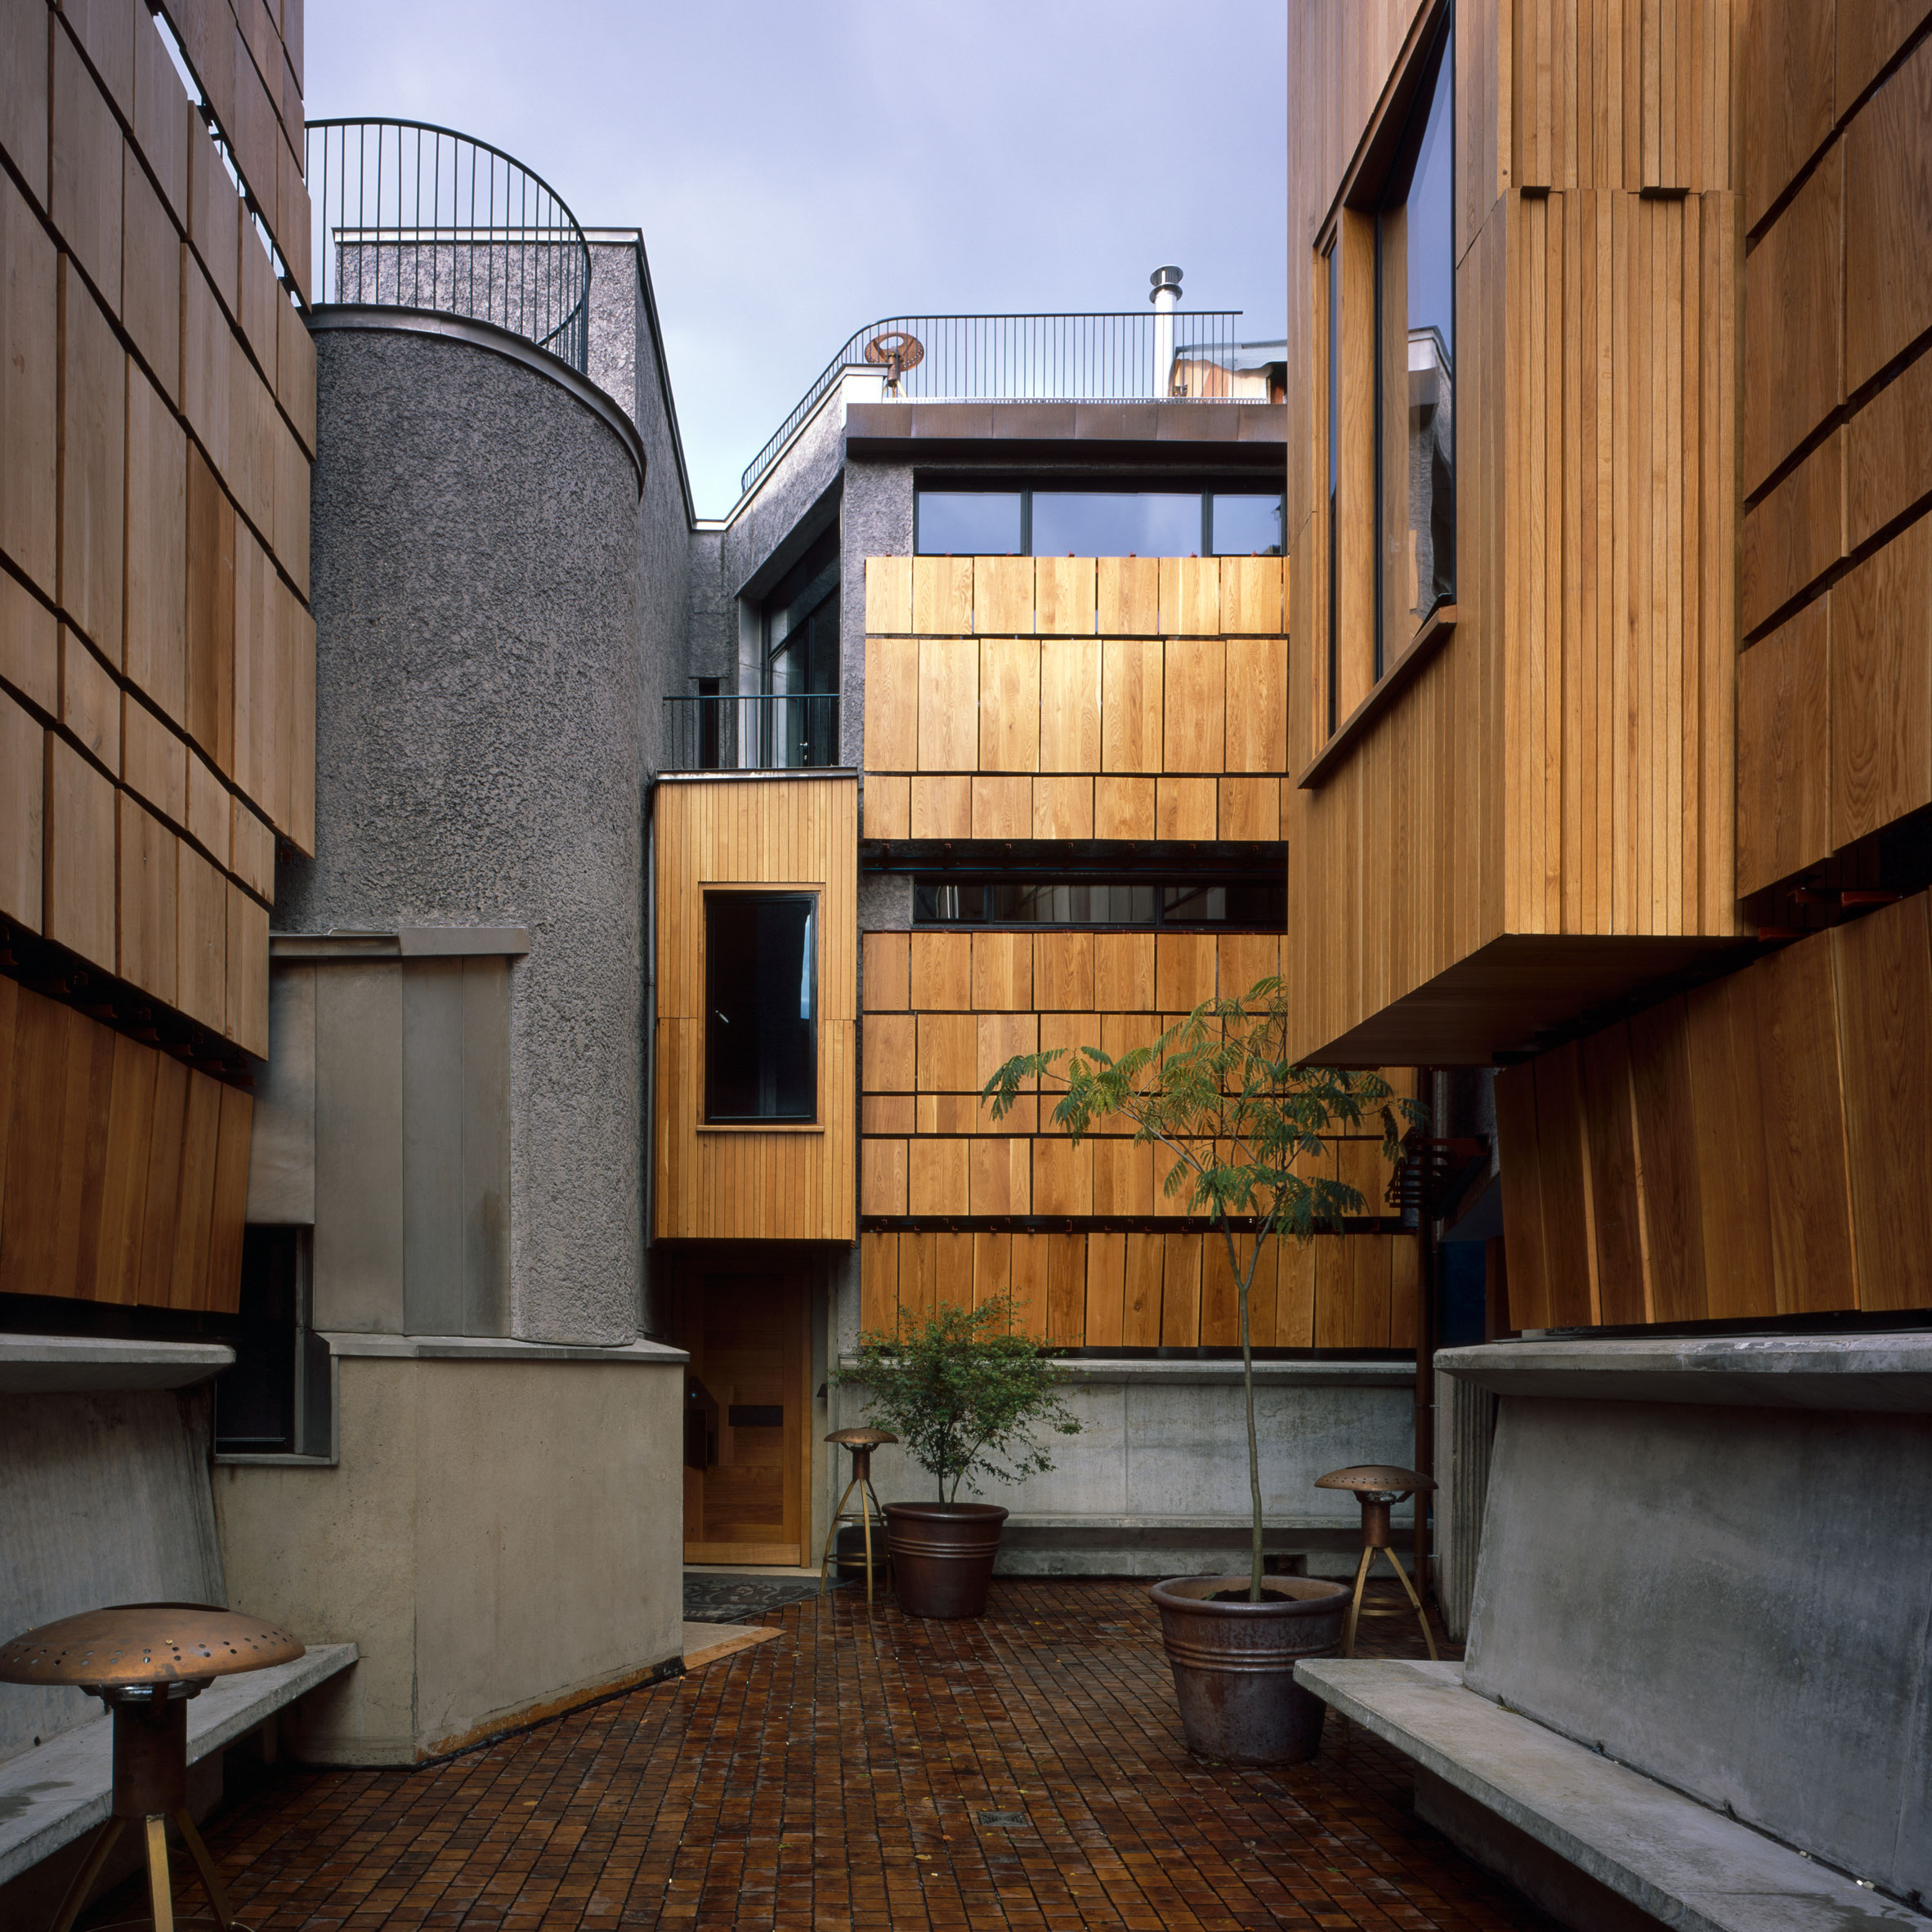 10 buildings worth visiting during Open House London this weekend